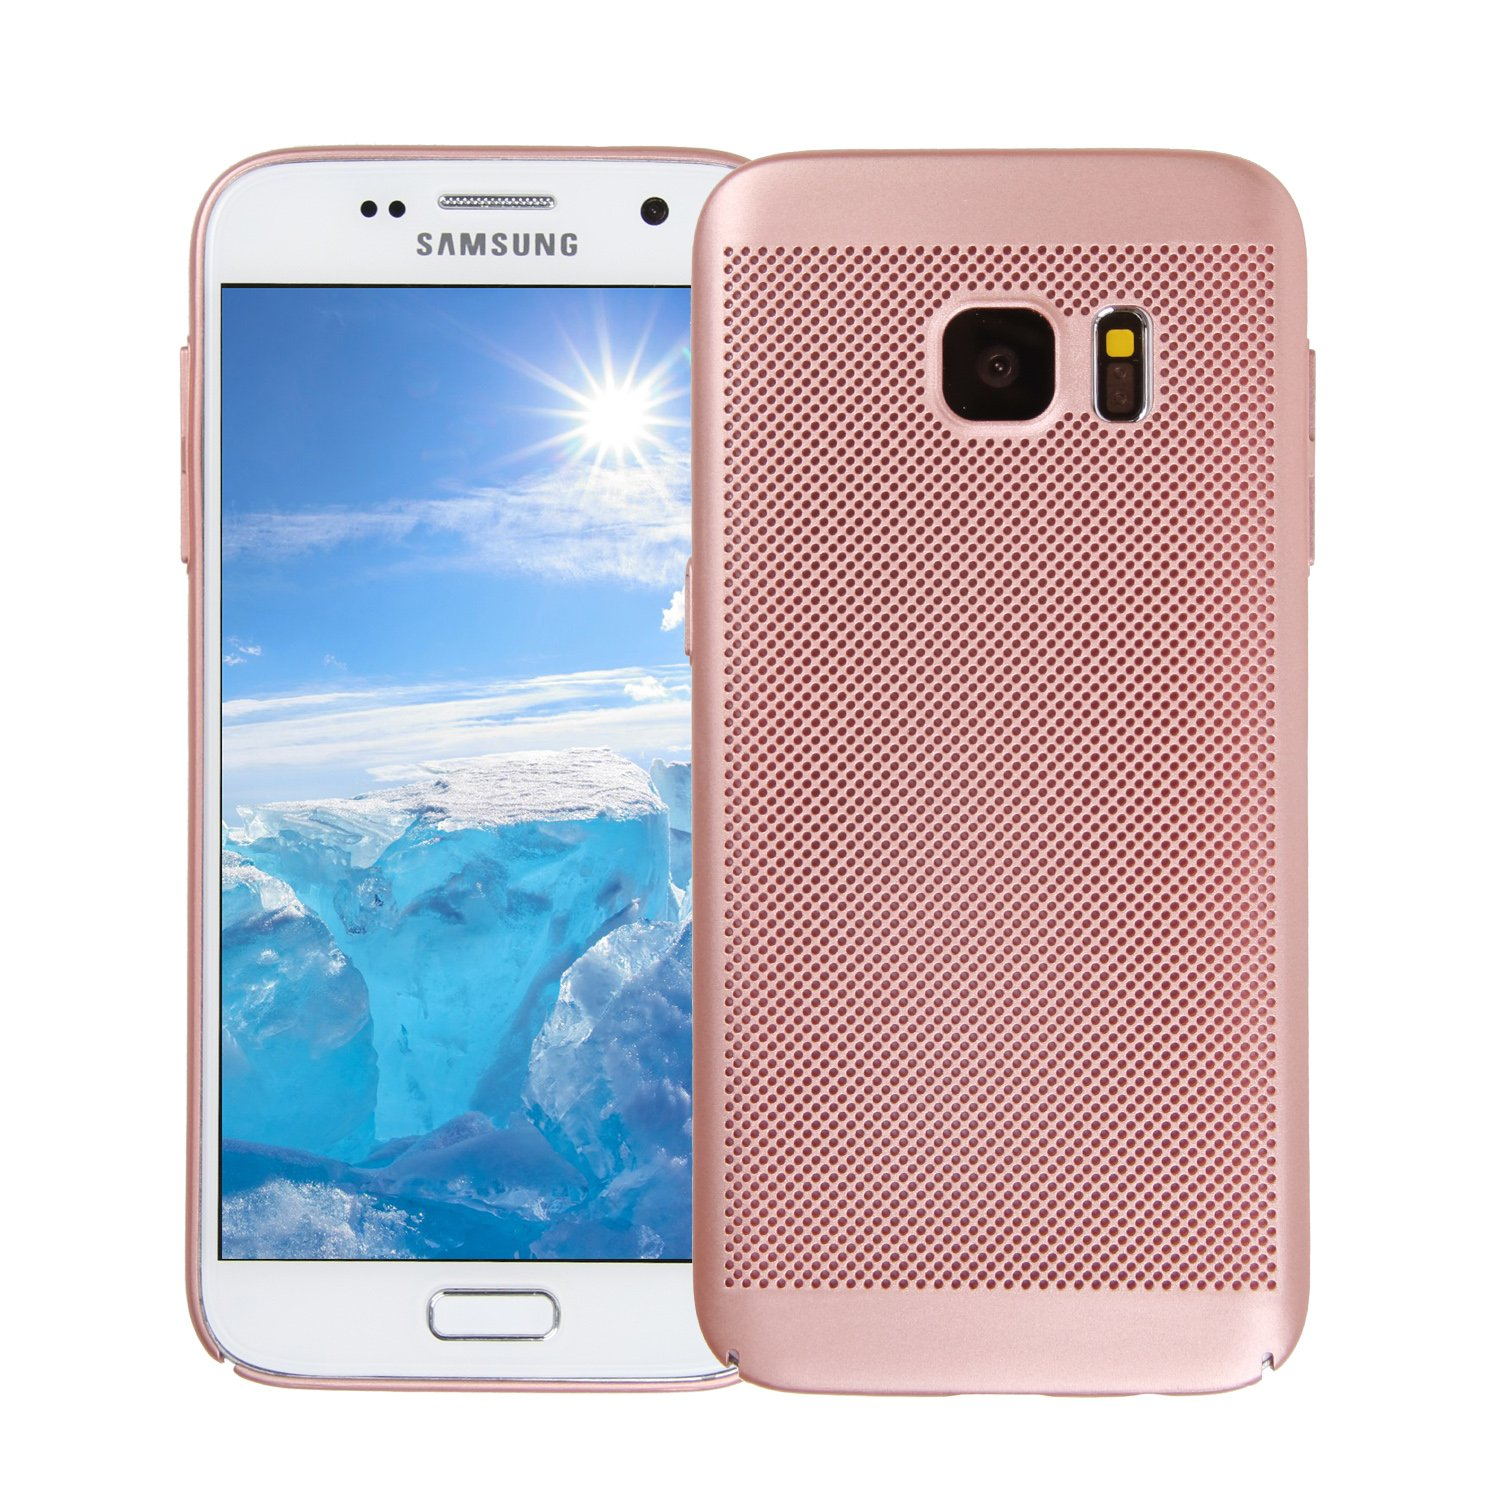 Samsung Galaxy S7 Case ITAMO Fashion Ultra-Thin Breathable Cooling Mesh Hard Phone Cover for Samsung Galaxy S7 (Pink)